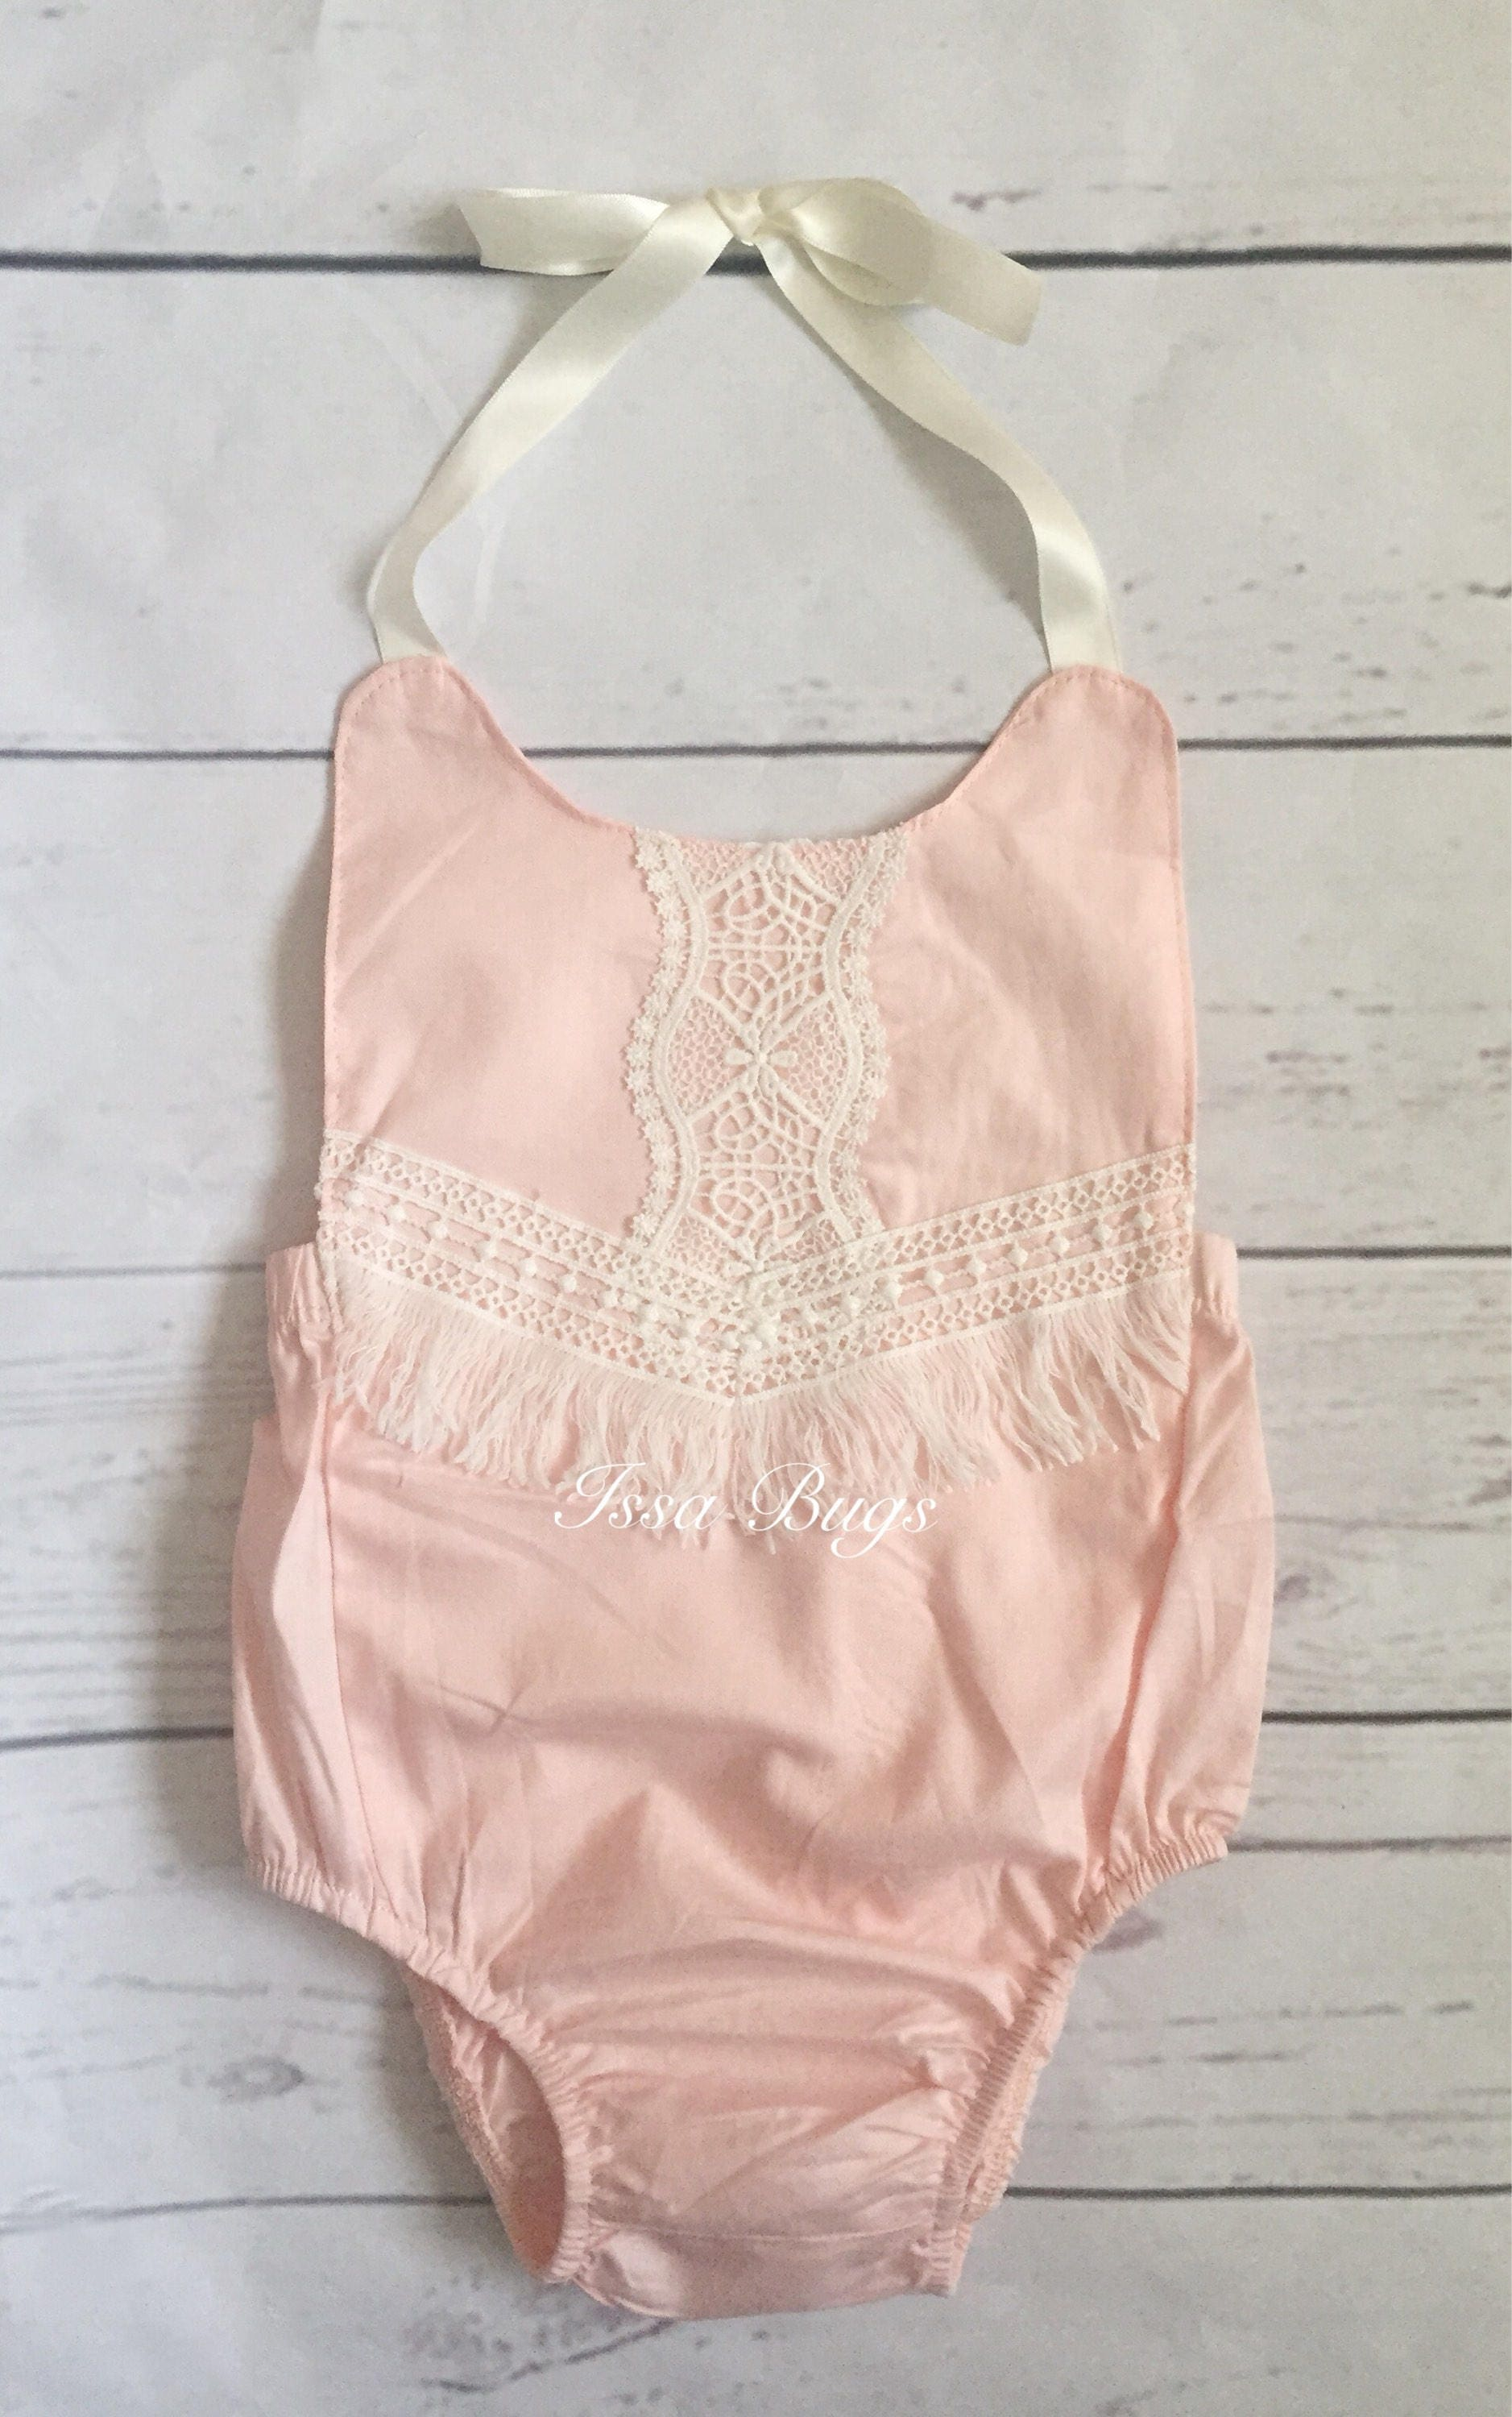 bd43fb0355a Baby girl outfit-baby girl clothes-baby romper-pink bubble romper-newborn  girl photo outfit-vintage pink romper-fringe boho baby romper